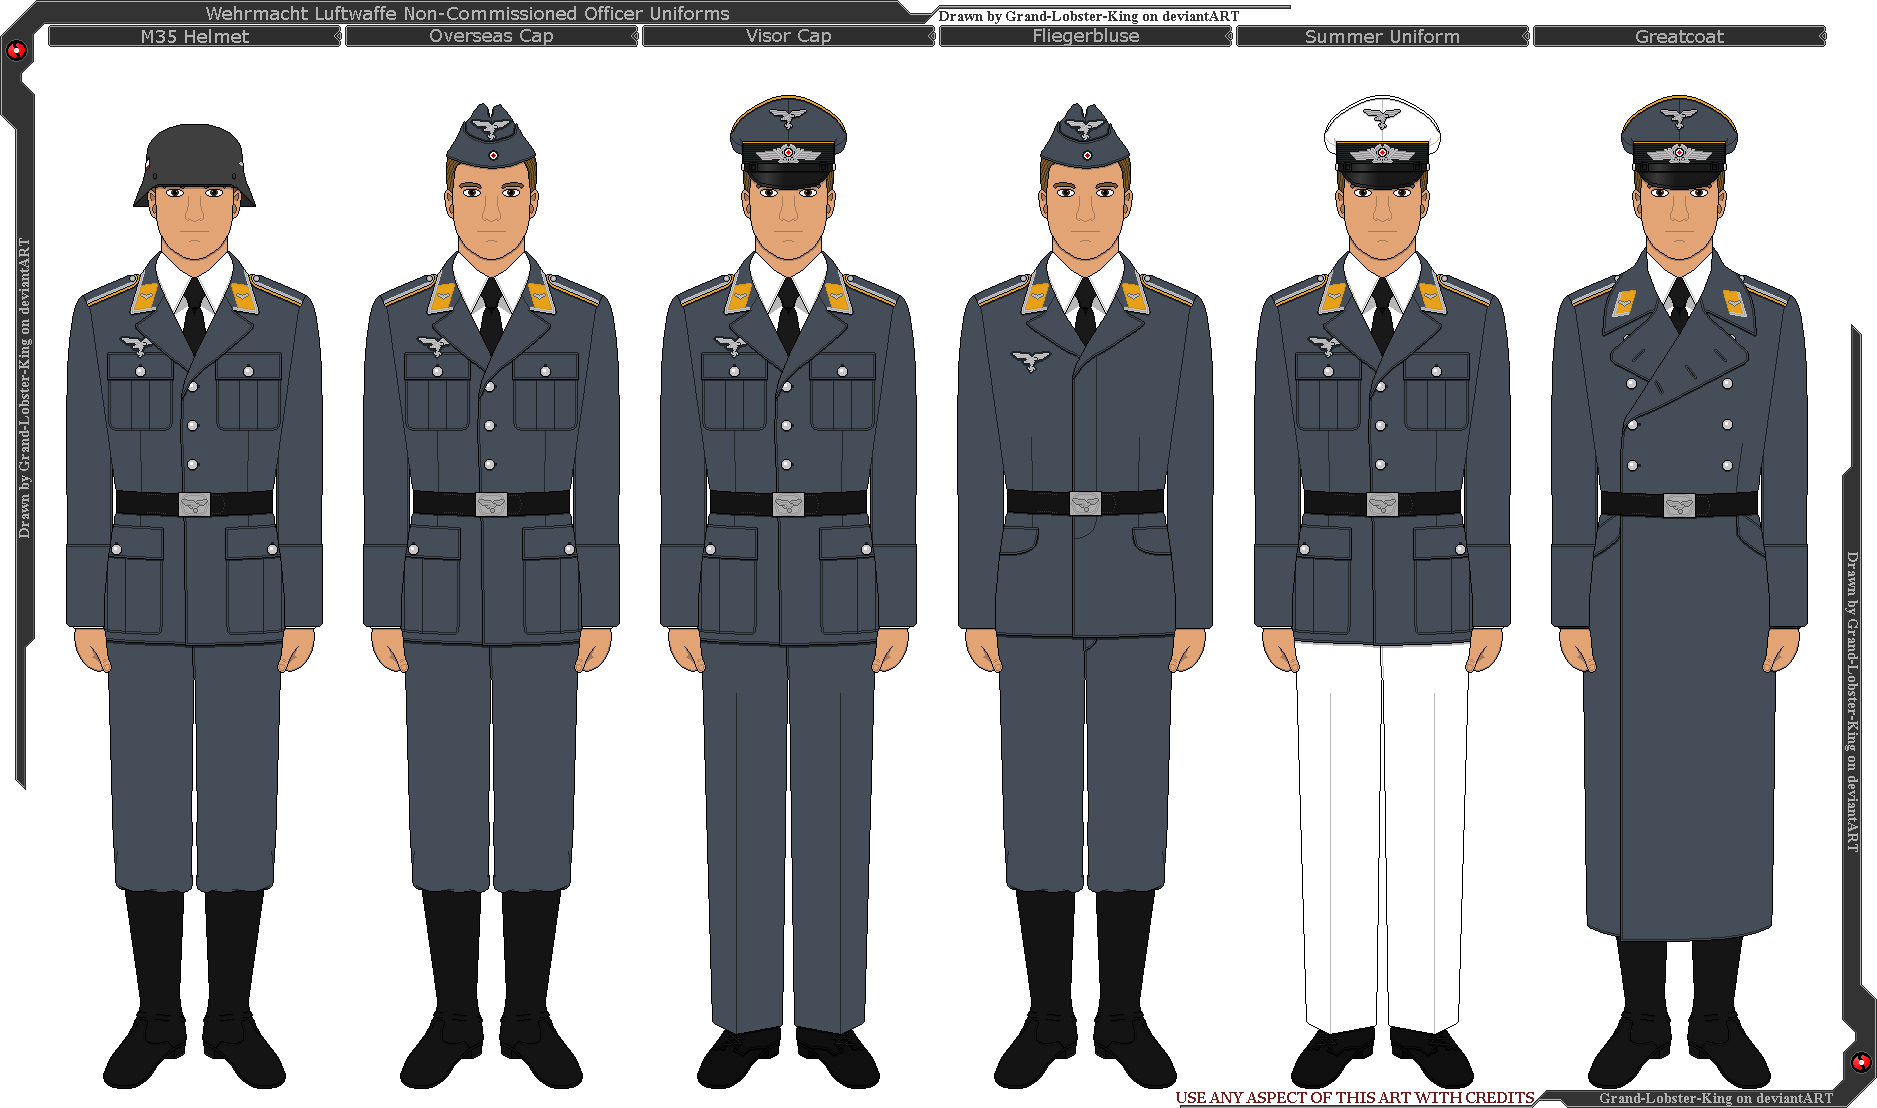 Wehrmacht Luftwaffe Non-Commissioned Off  Uniforms by Grand